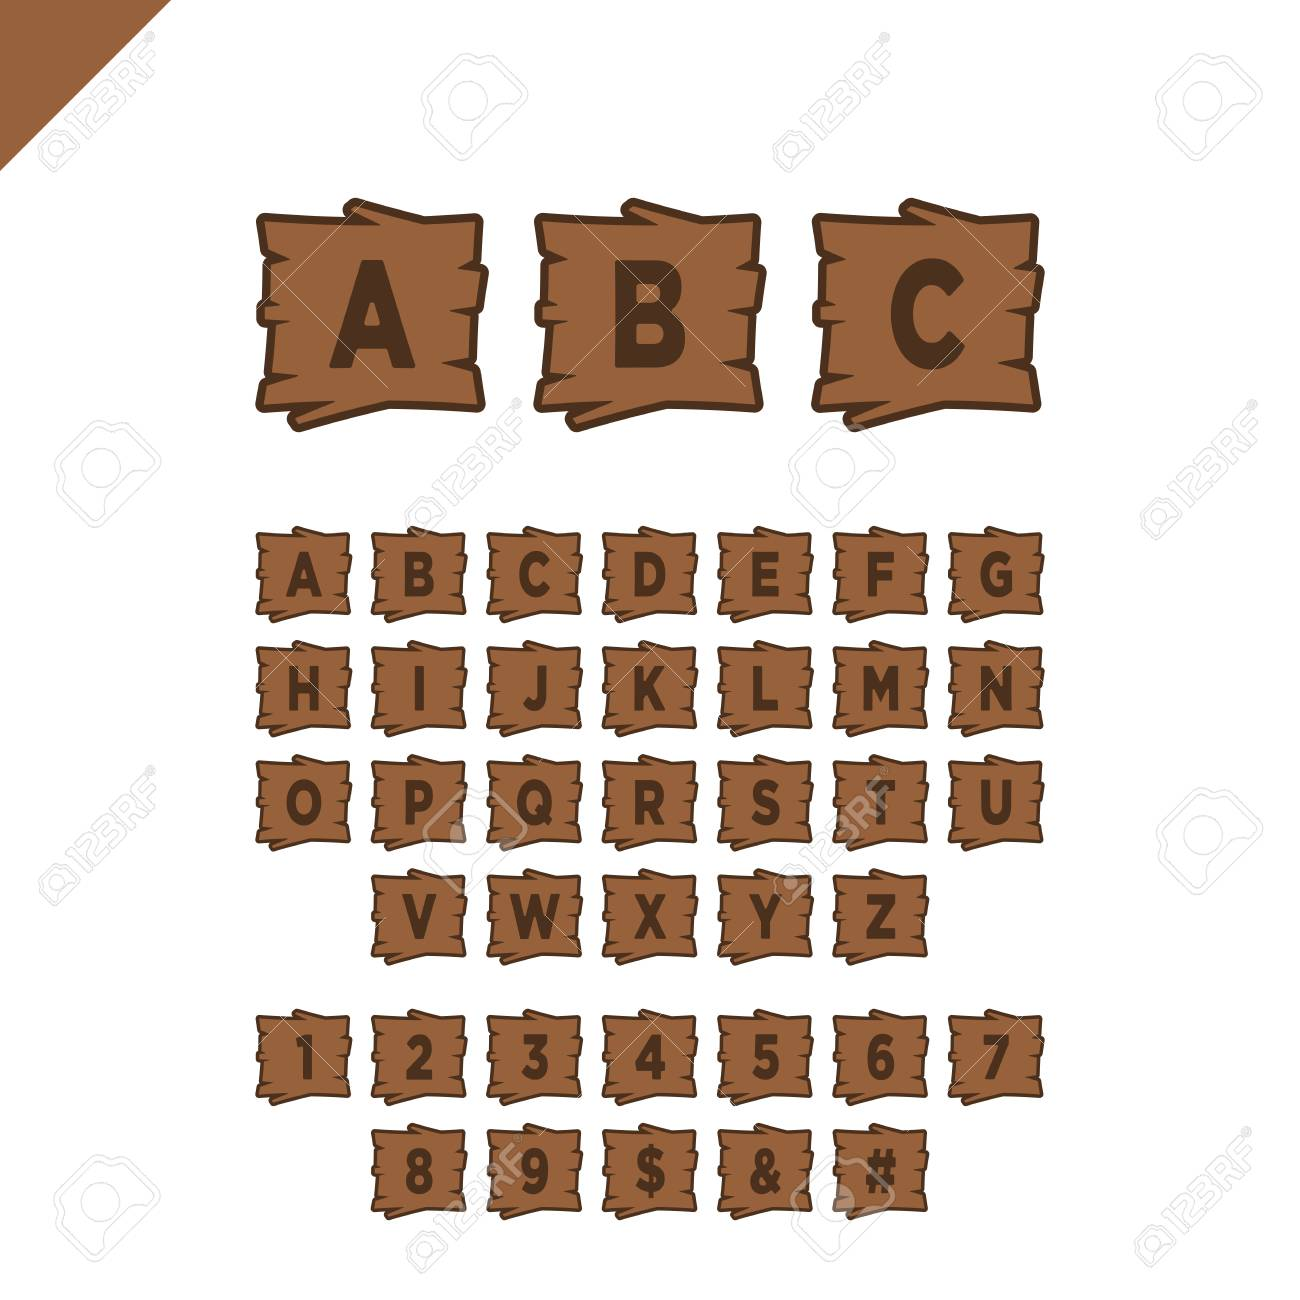 Alphabet Box Letter Font.Wooden Alphabet Blocks With Letters And Numbers In Wood Texture